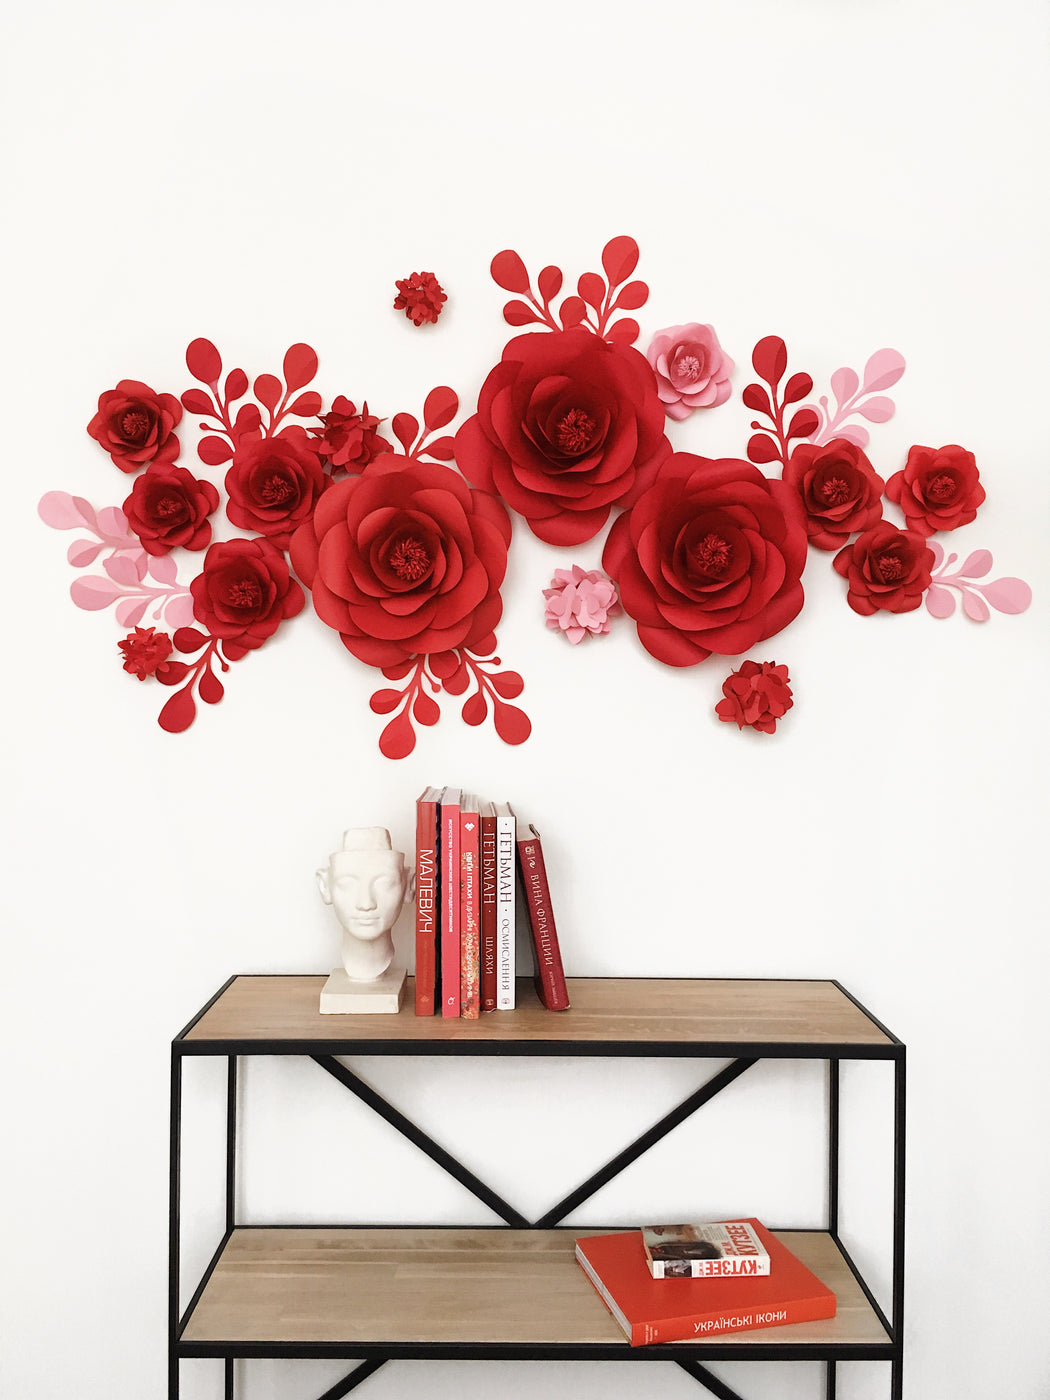 PAPER FLOWERS INTERIOR DECOR - INTERIOR PAPER FLOWER IDEAS - Mio Gallery